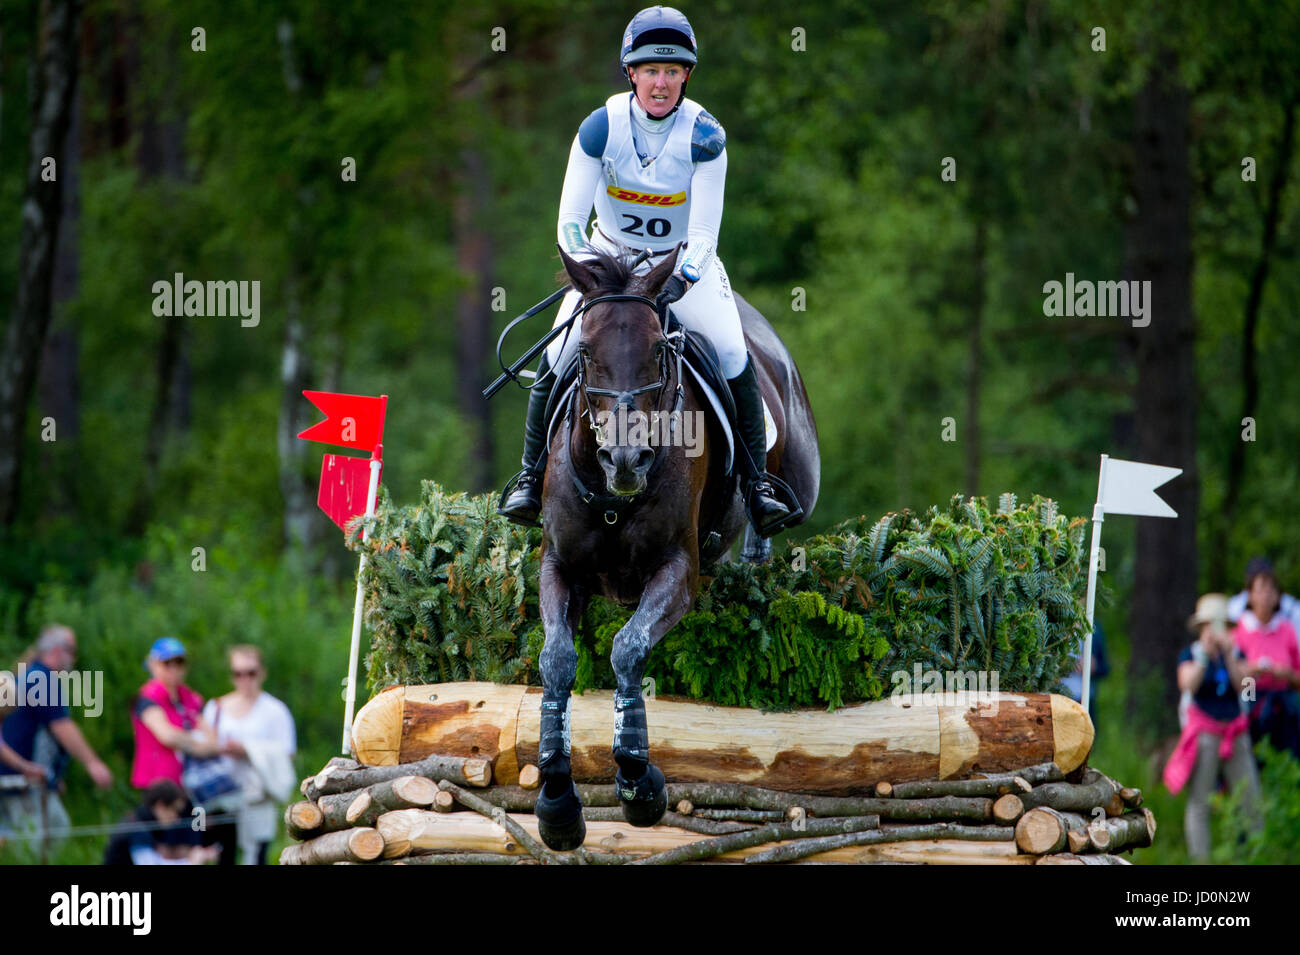 Luhmuehlen, Germany. 17th June, 2017. British eventing rider Nicola Wilson jumps over a hurdle on her horse Bulana - Stock Image